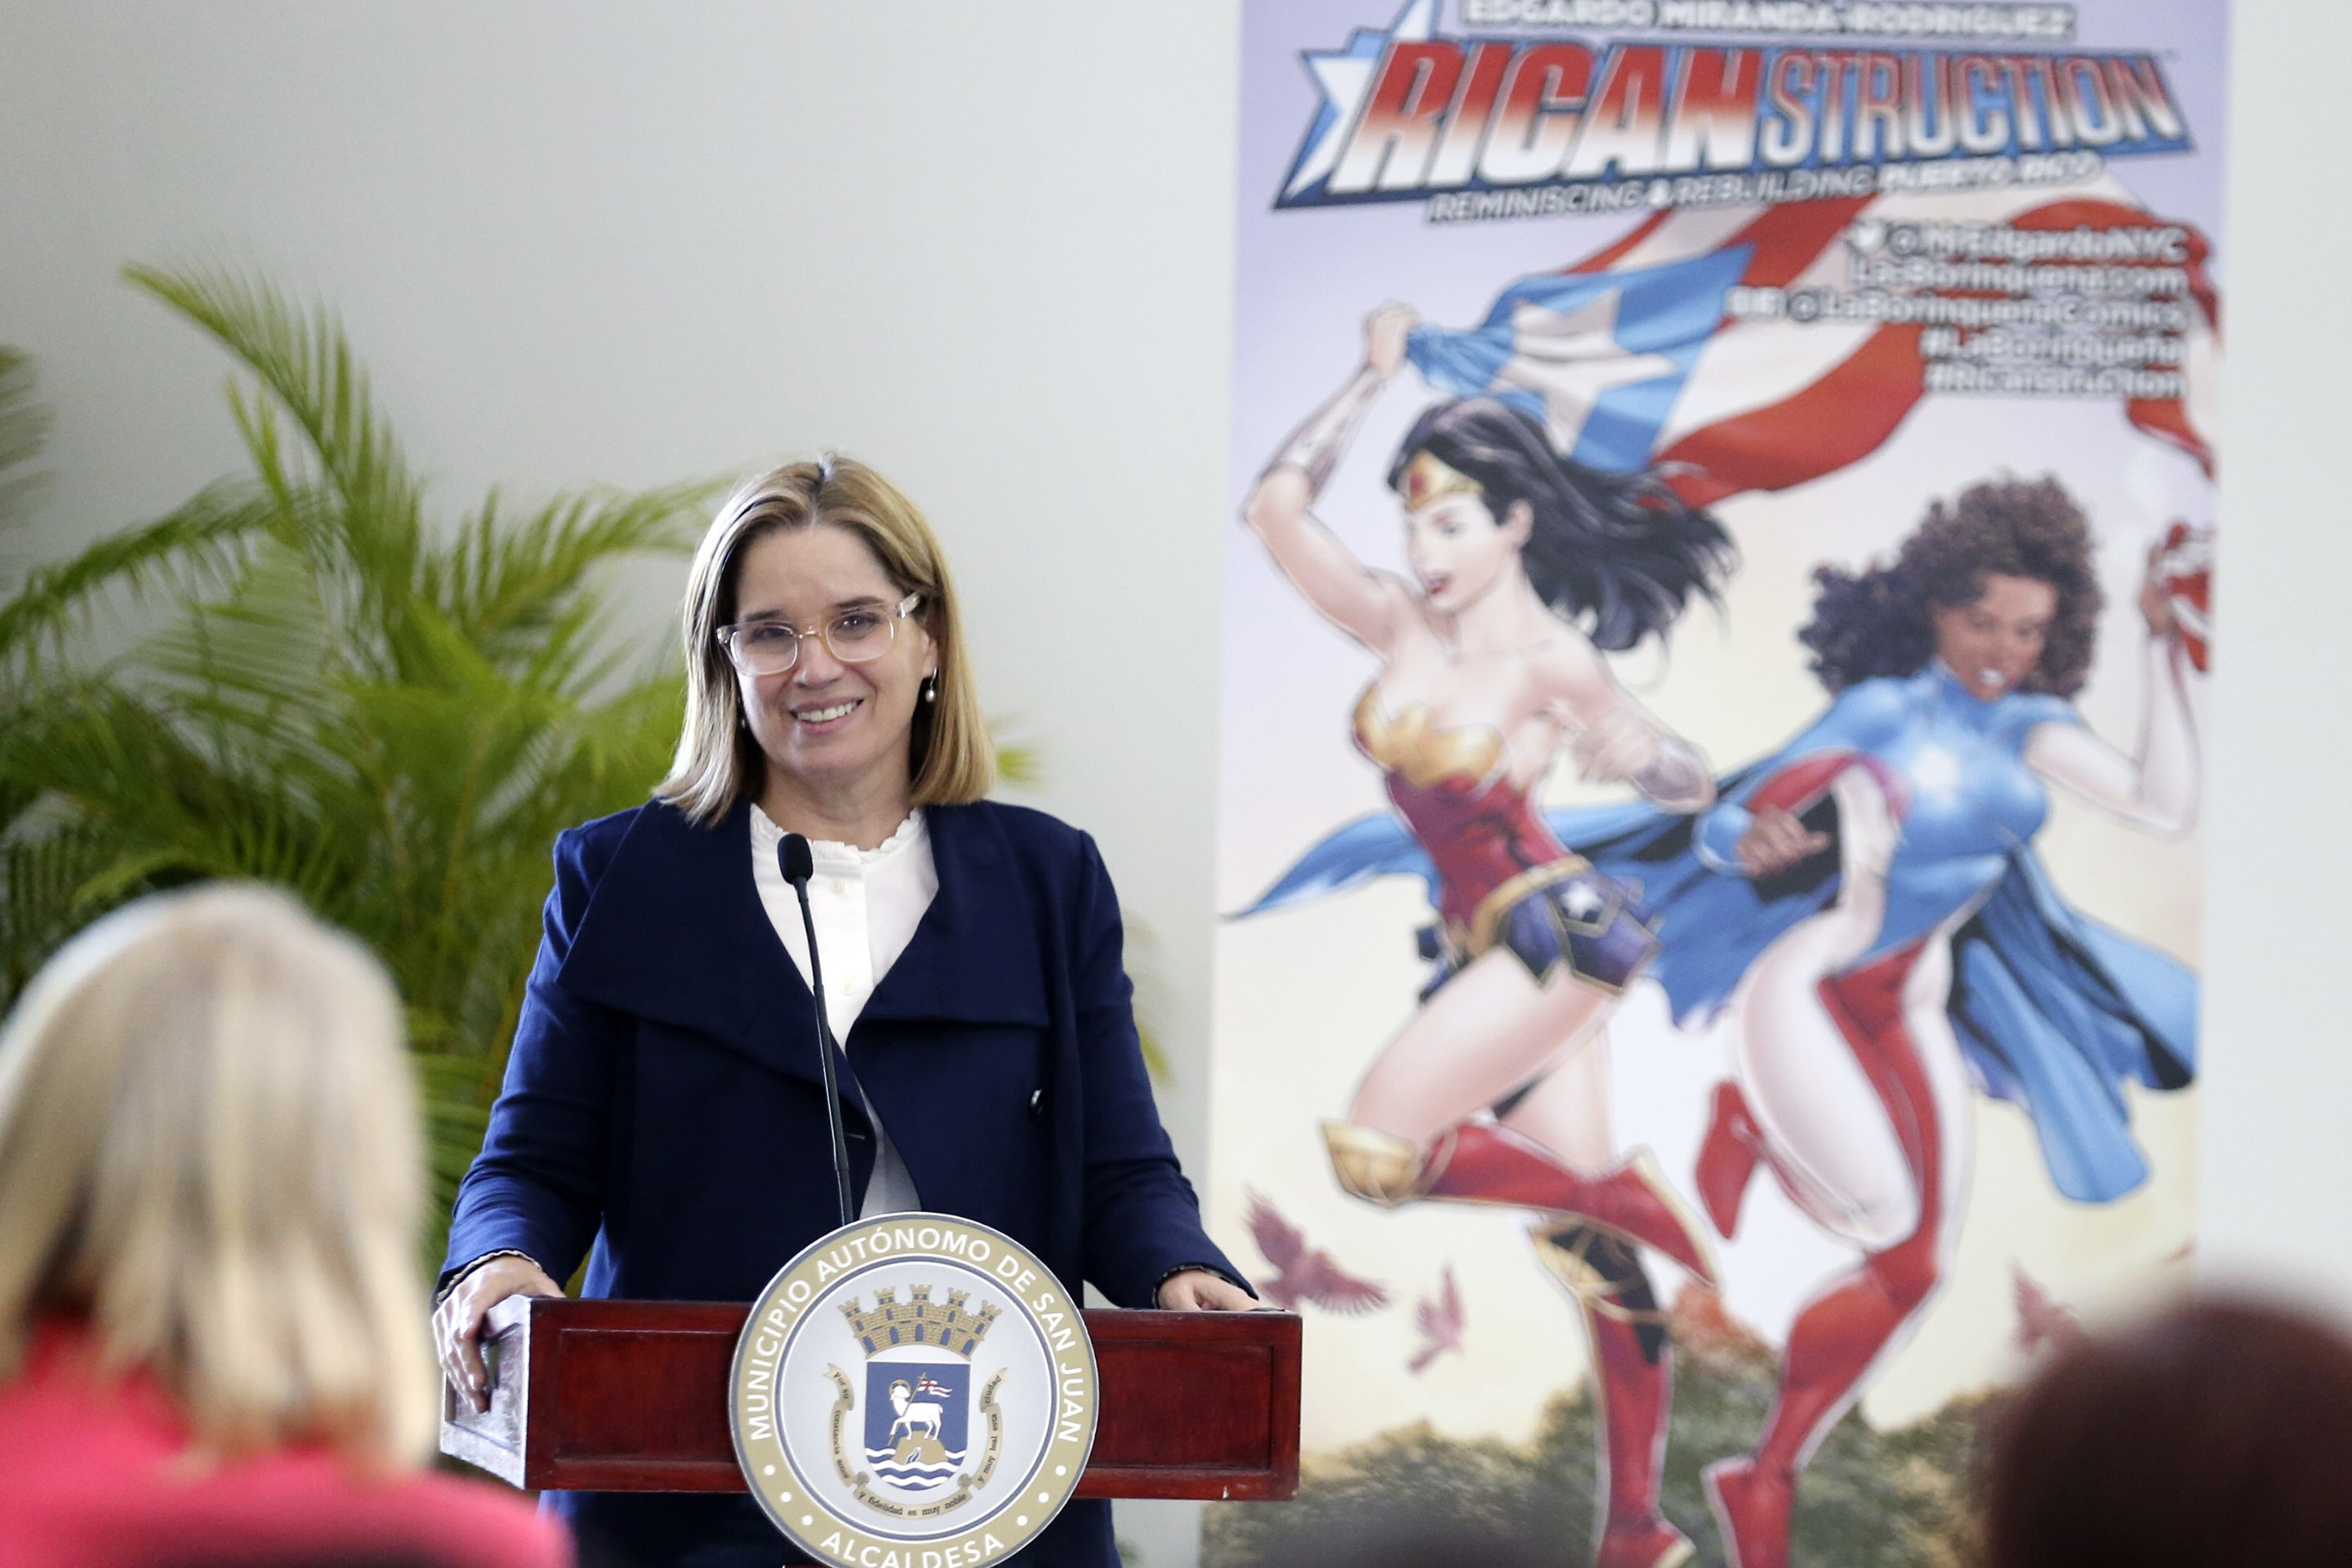 Mayor Carmen Yulín Cruz delivers an inspiring keynote speech